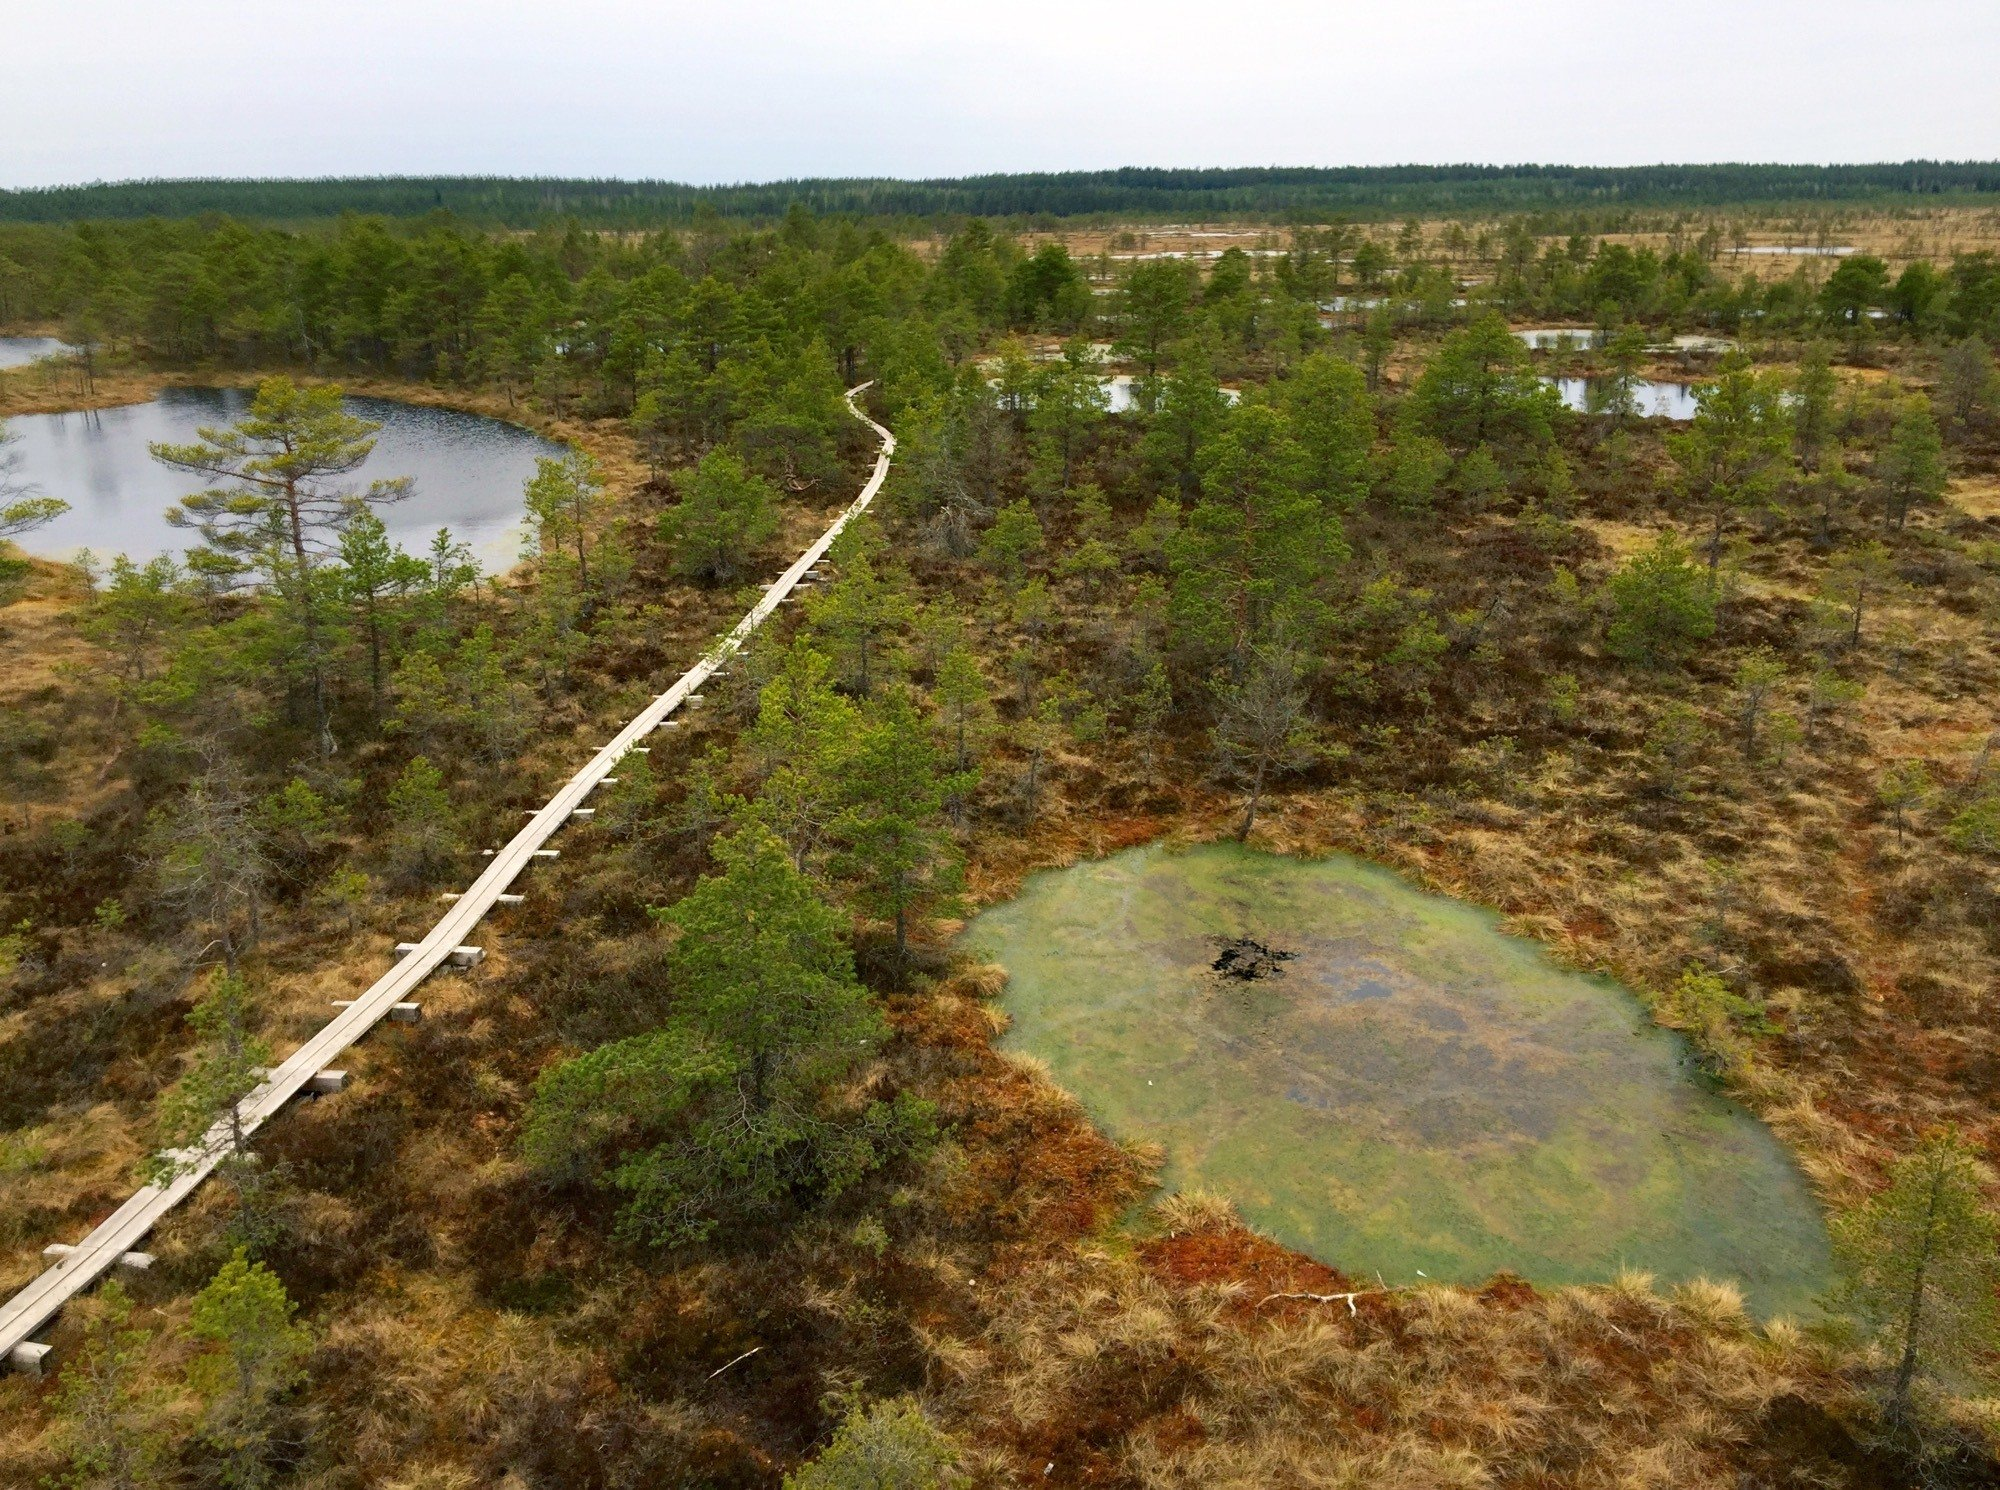 Bog walking in Kõnnu Suursoo national park